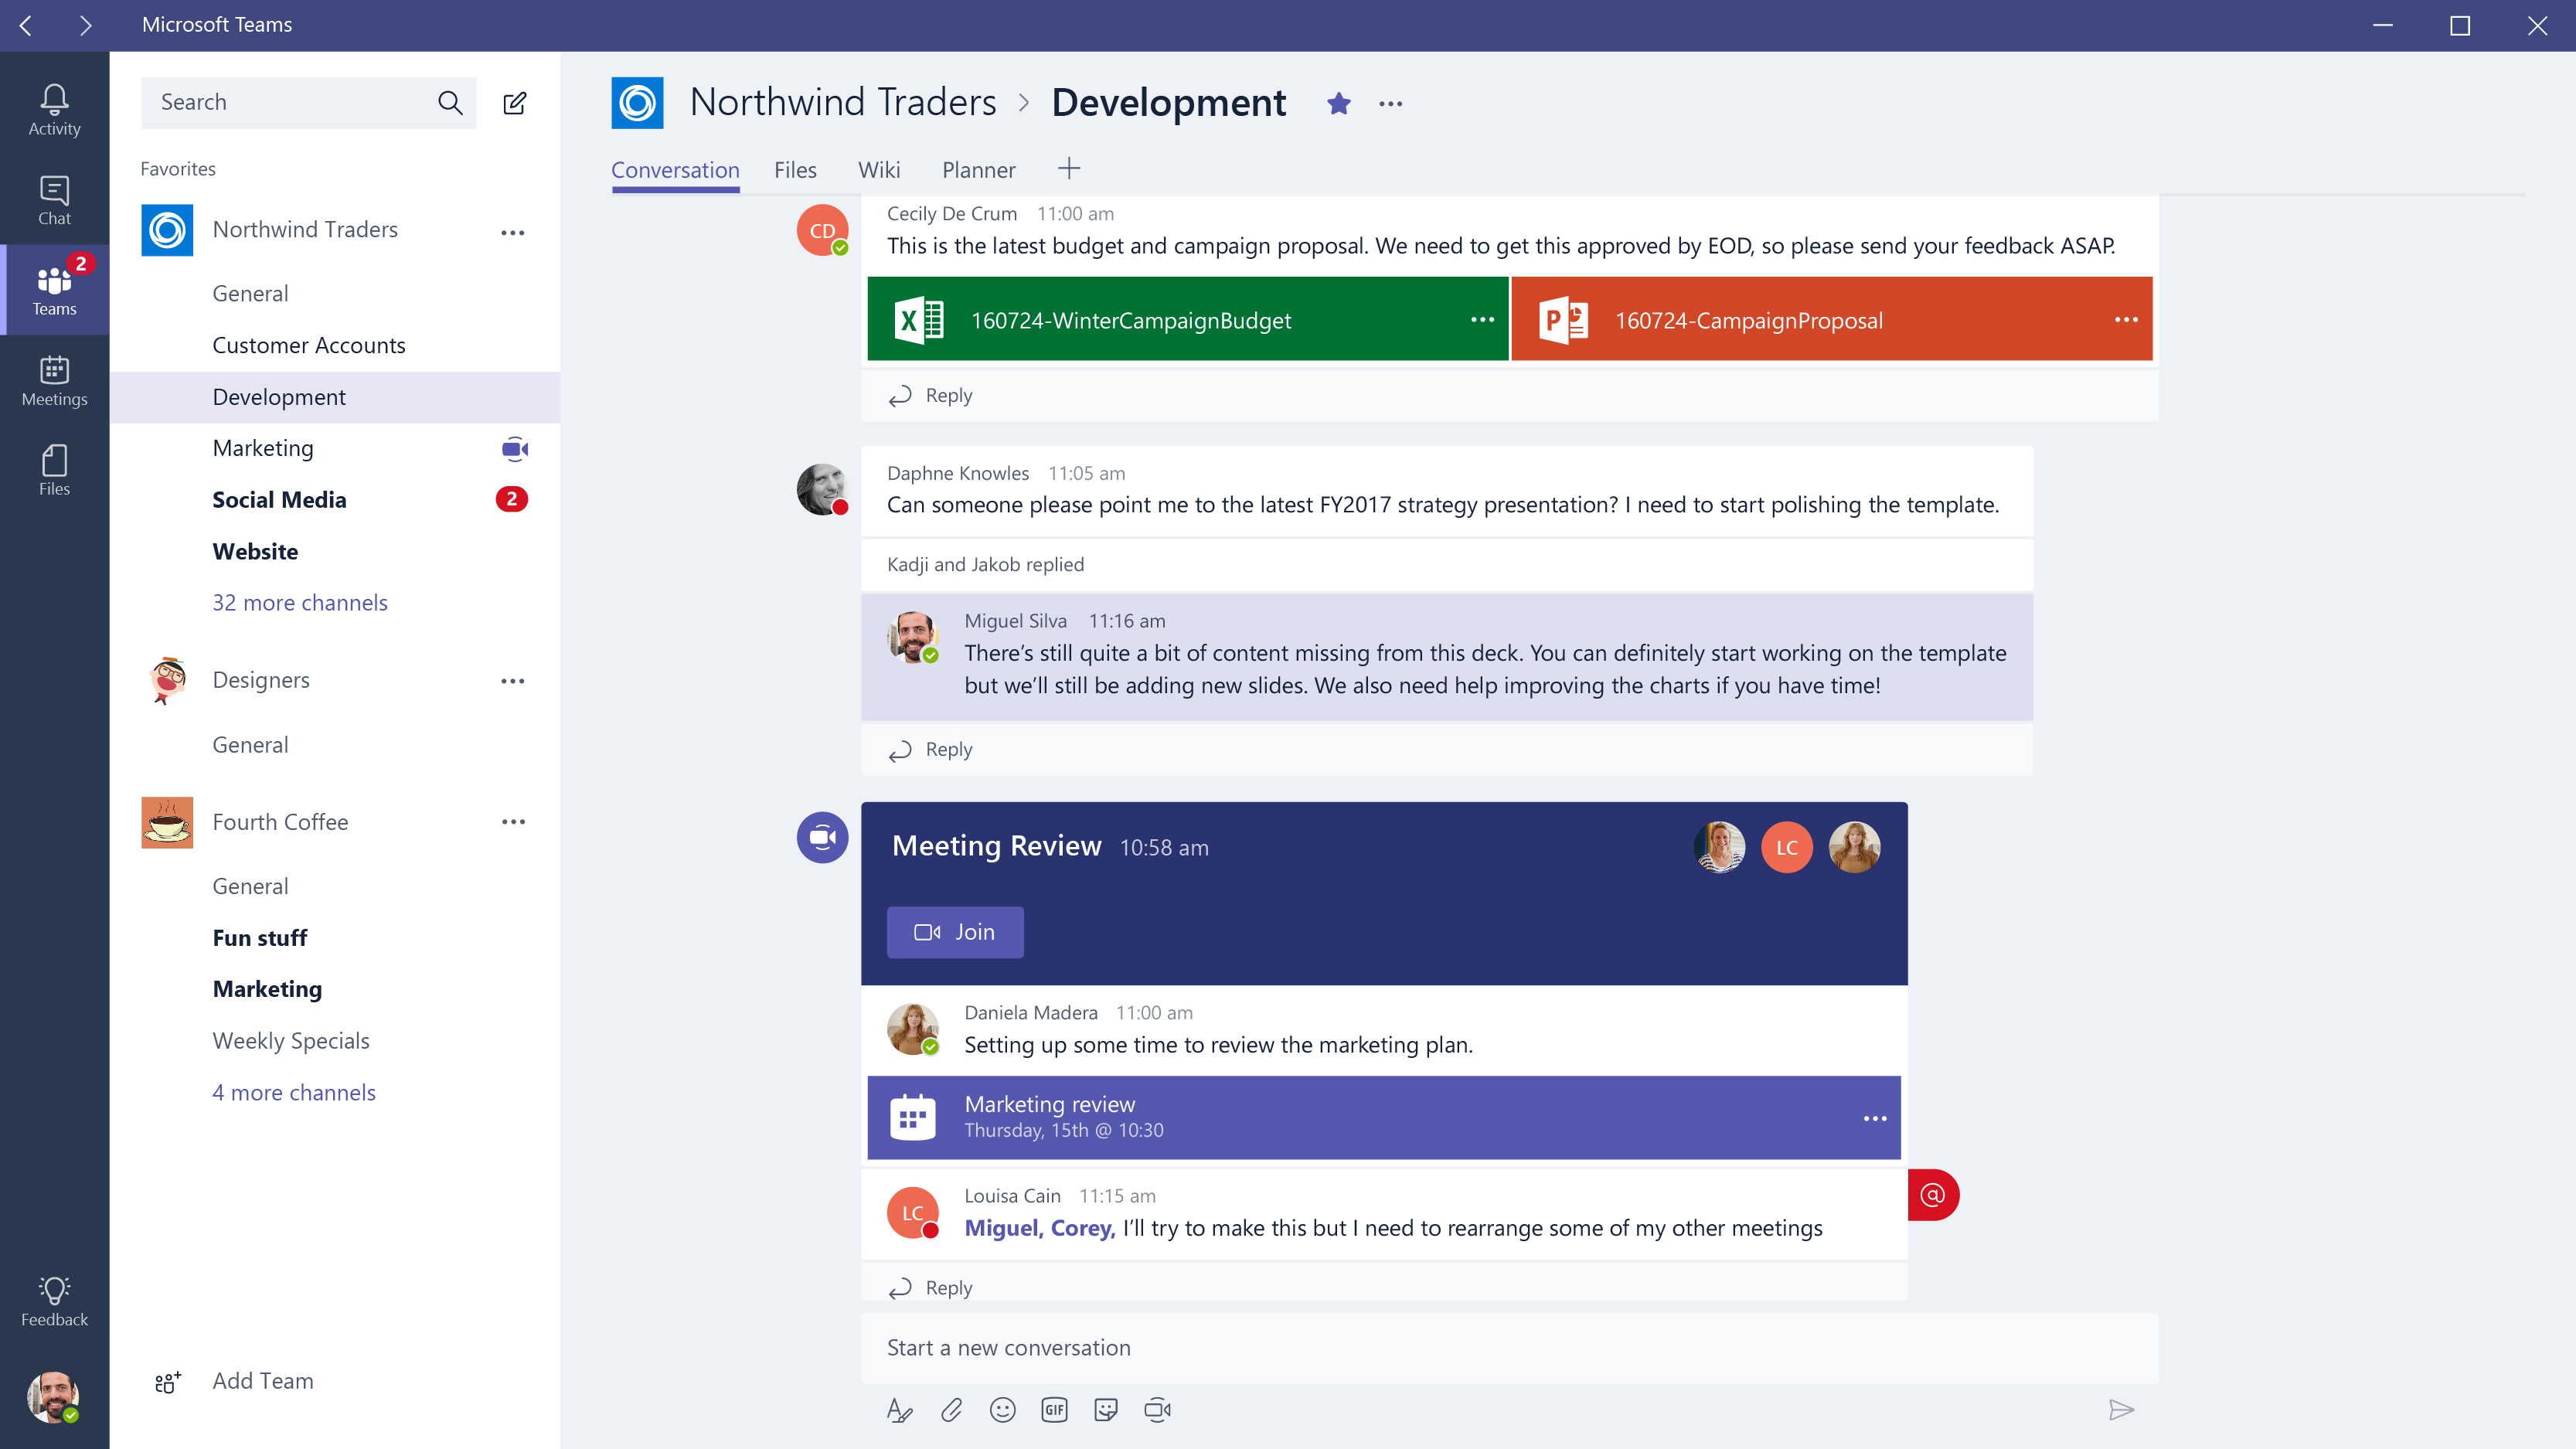 Microsoft Teams rolls out to Office 365 customers worldwide - Asia ...